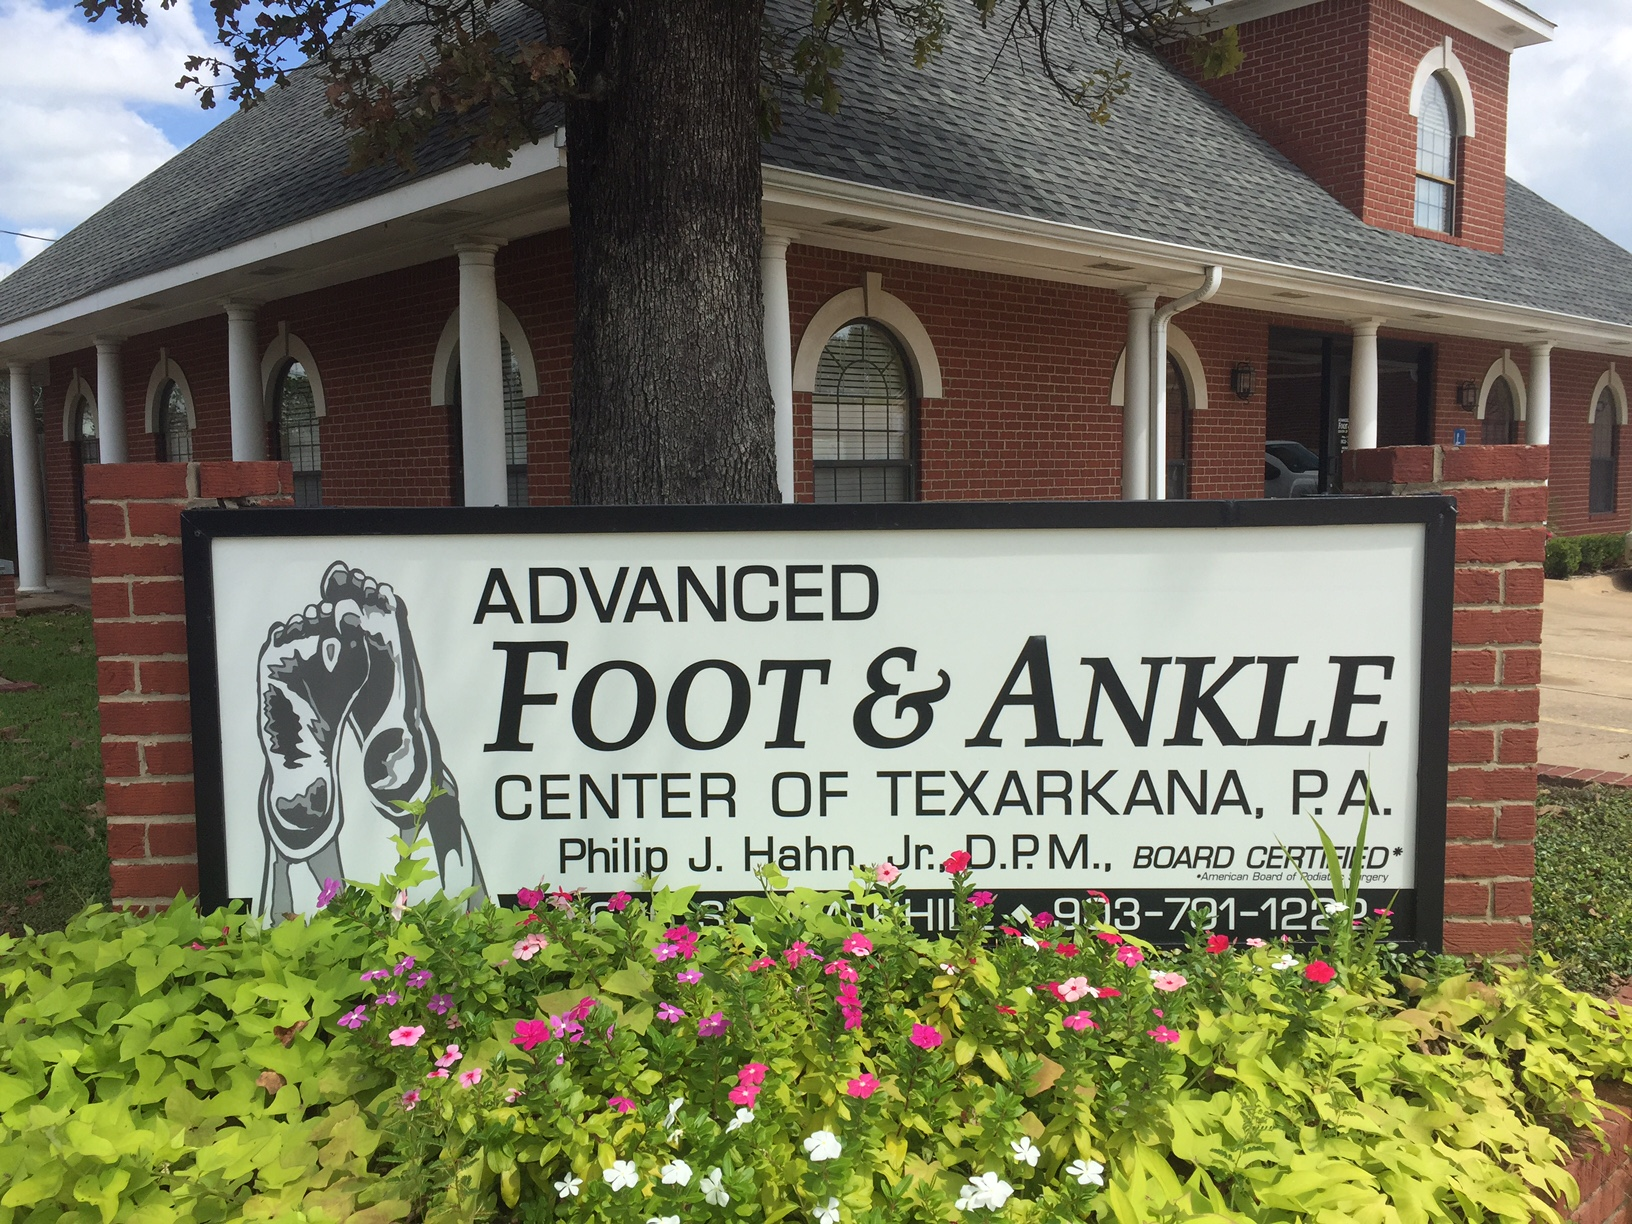 Advanced Foot & Ankle Center image 4